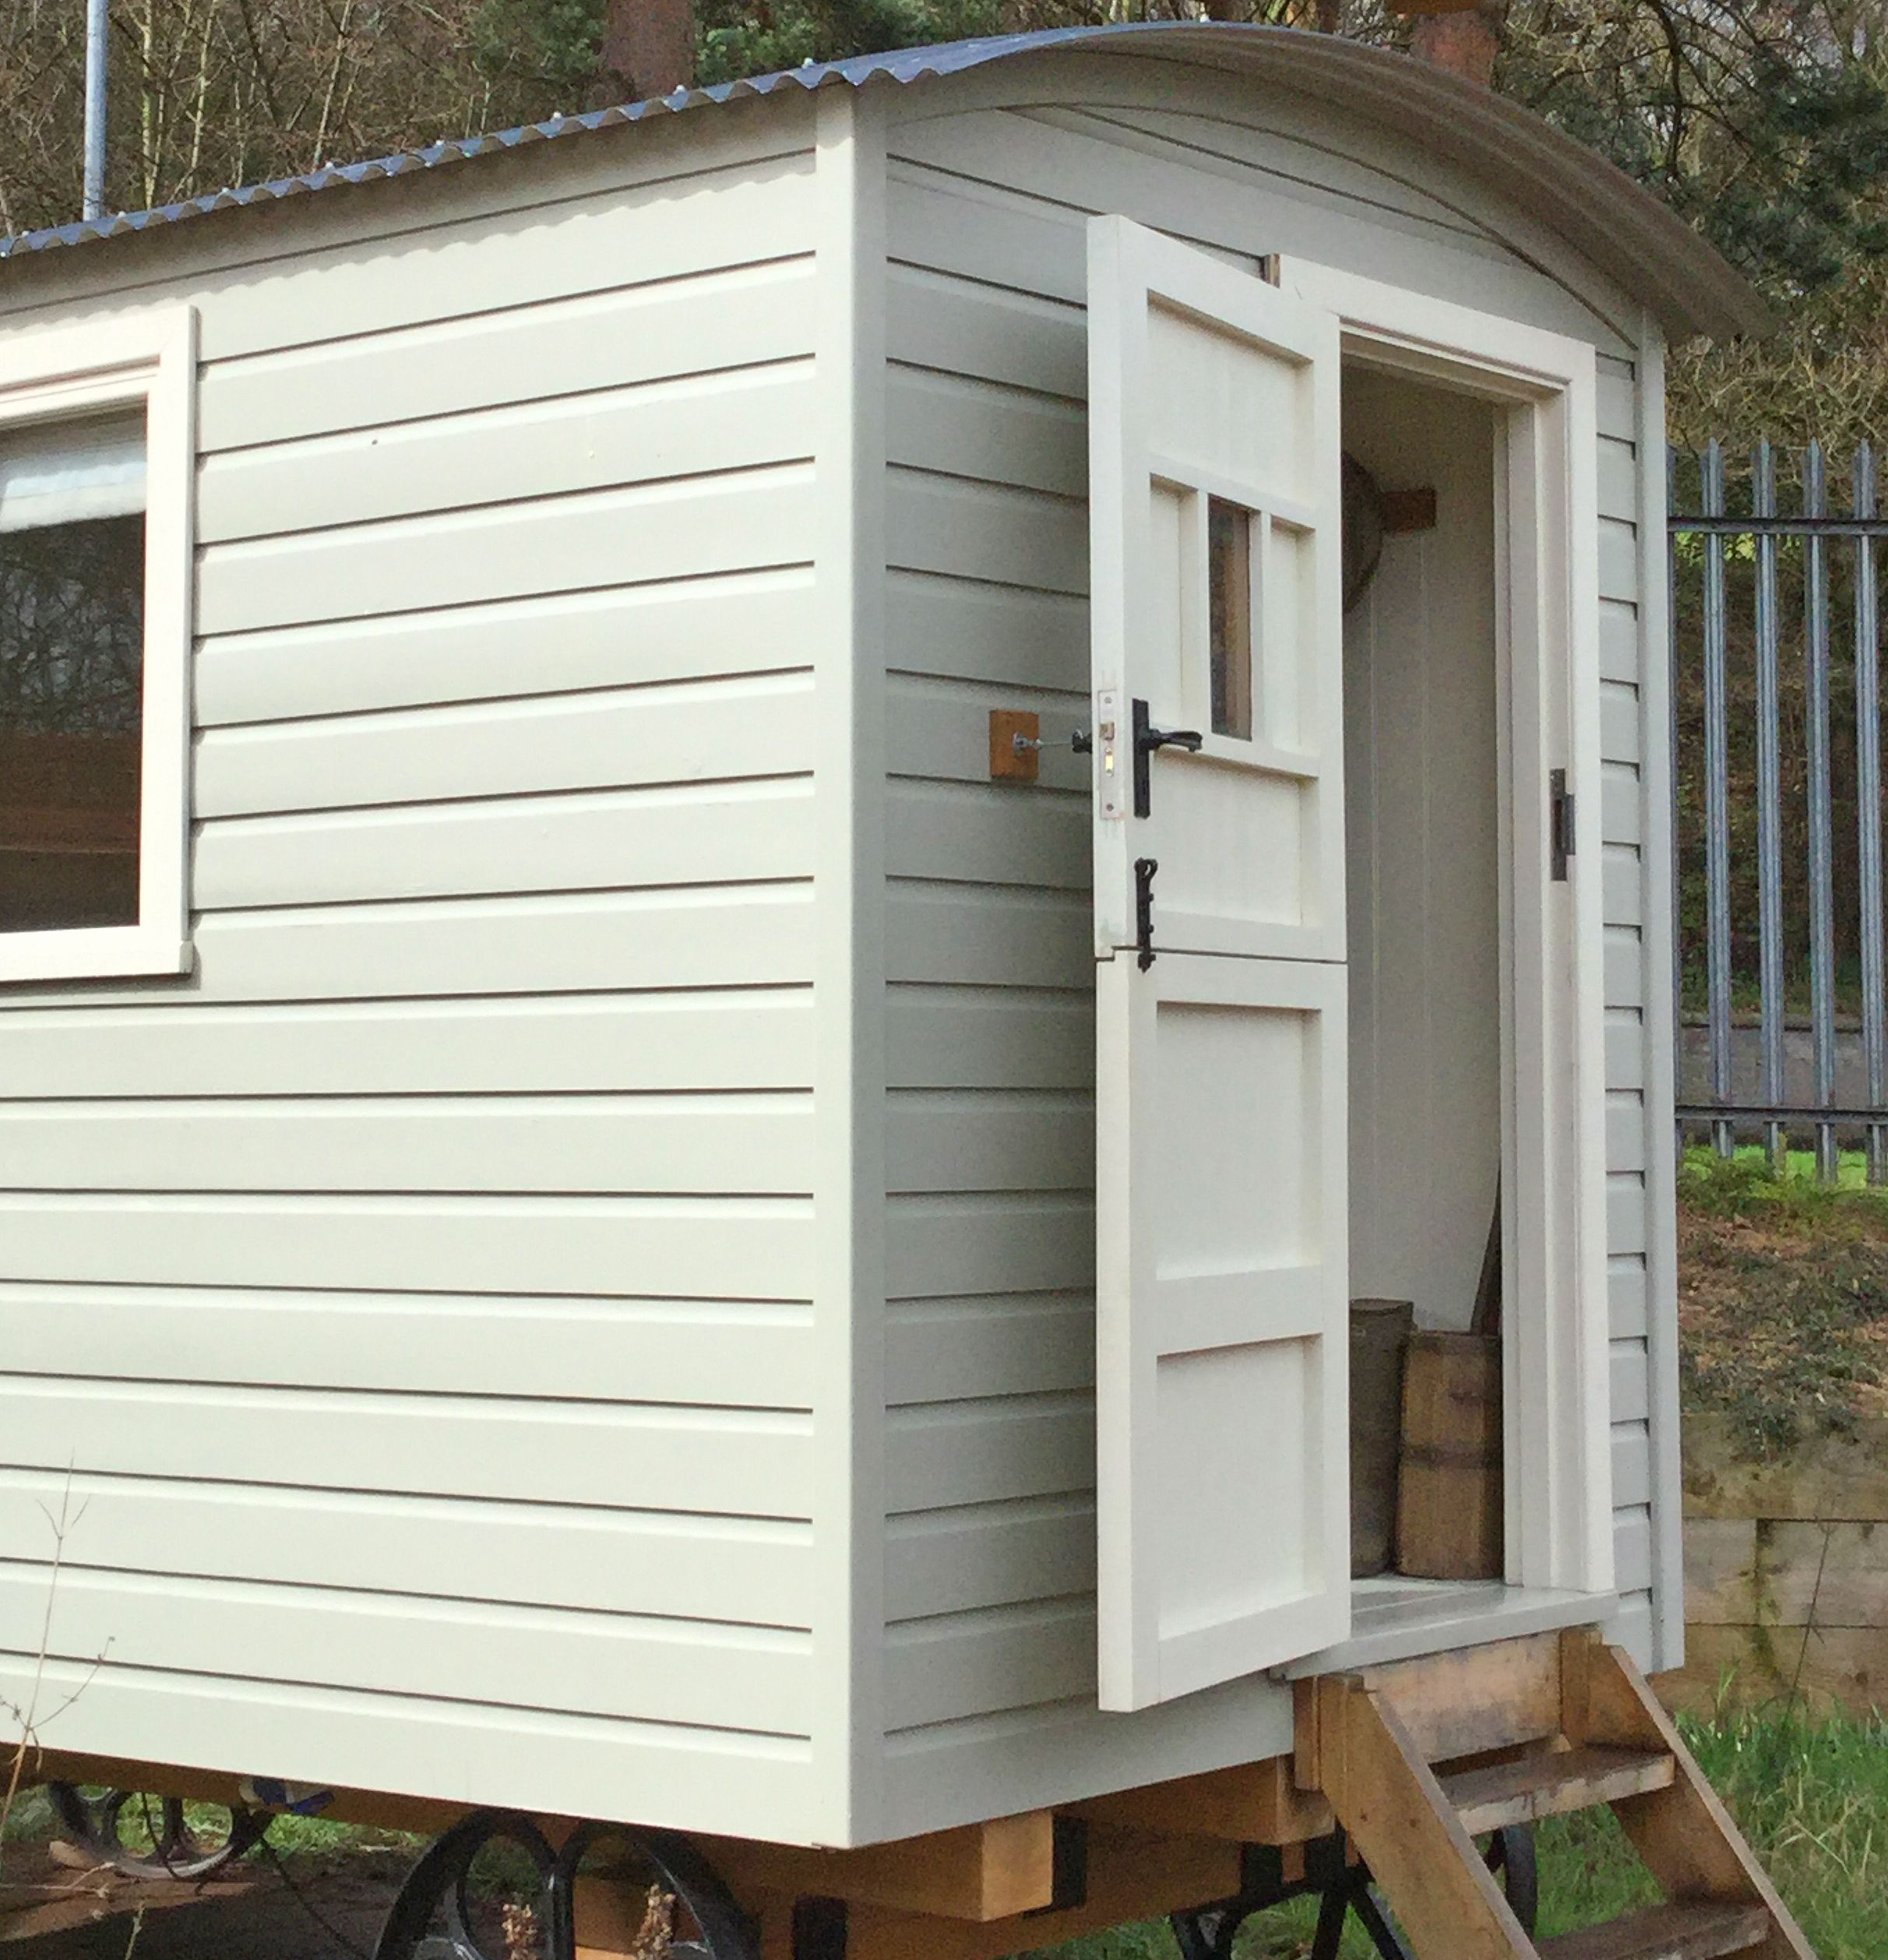 Shepherds Hut on display at Leek show site Photo credit: Mansell ...